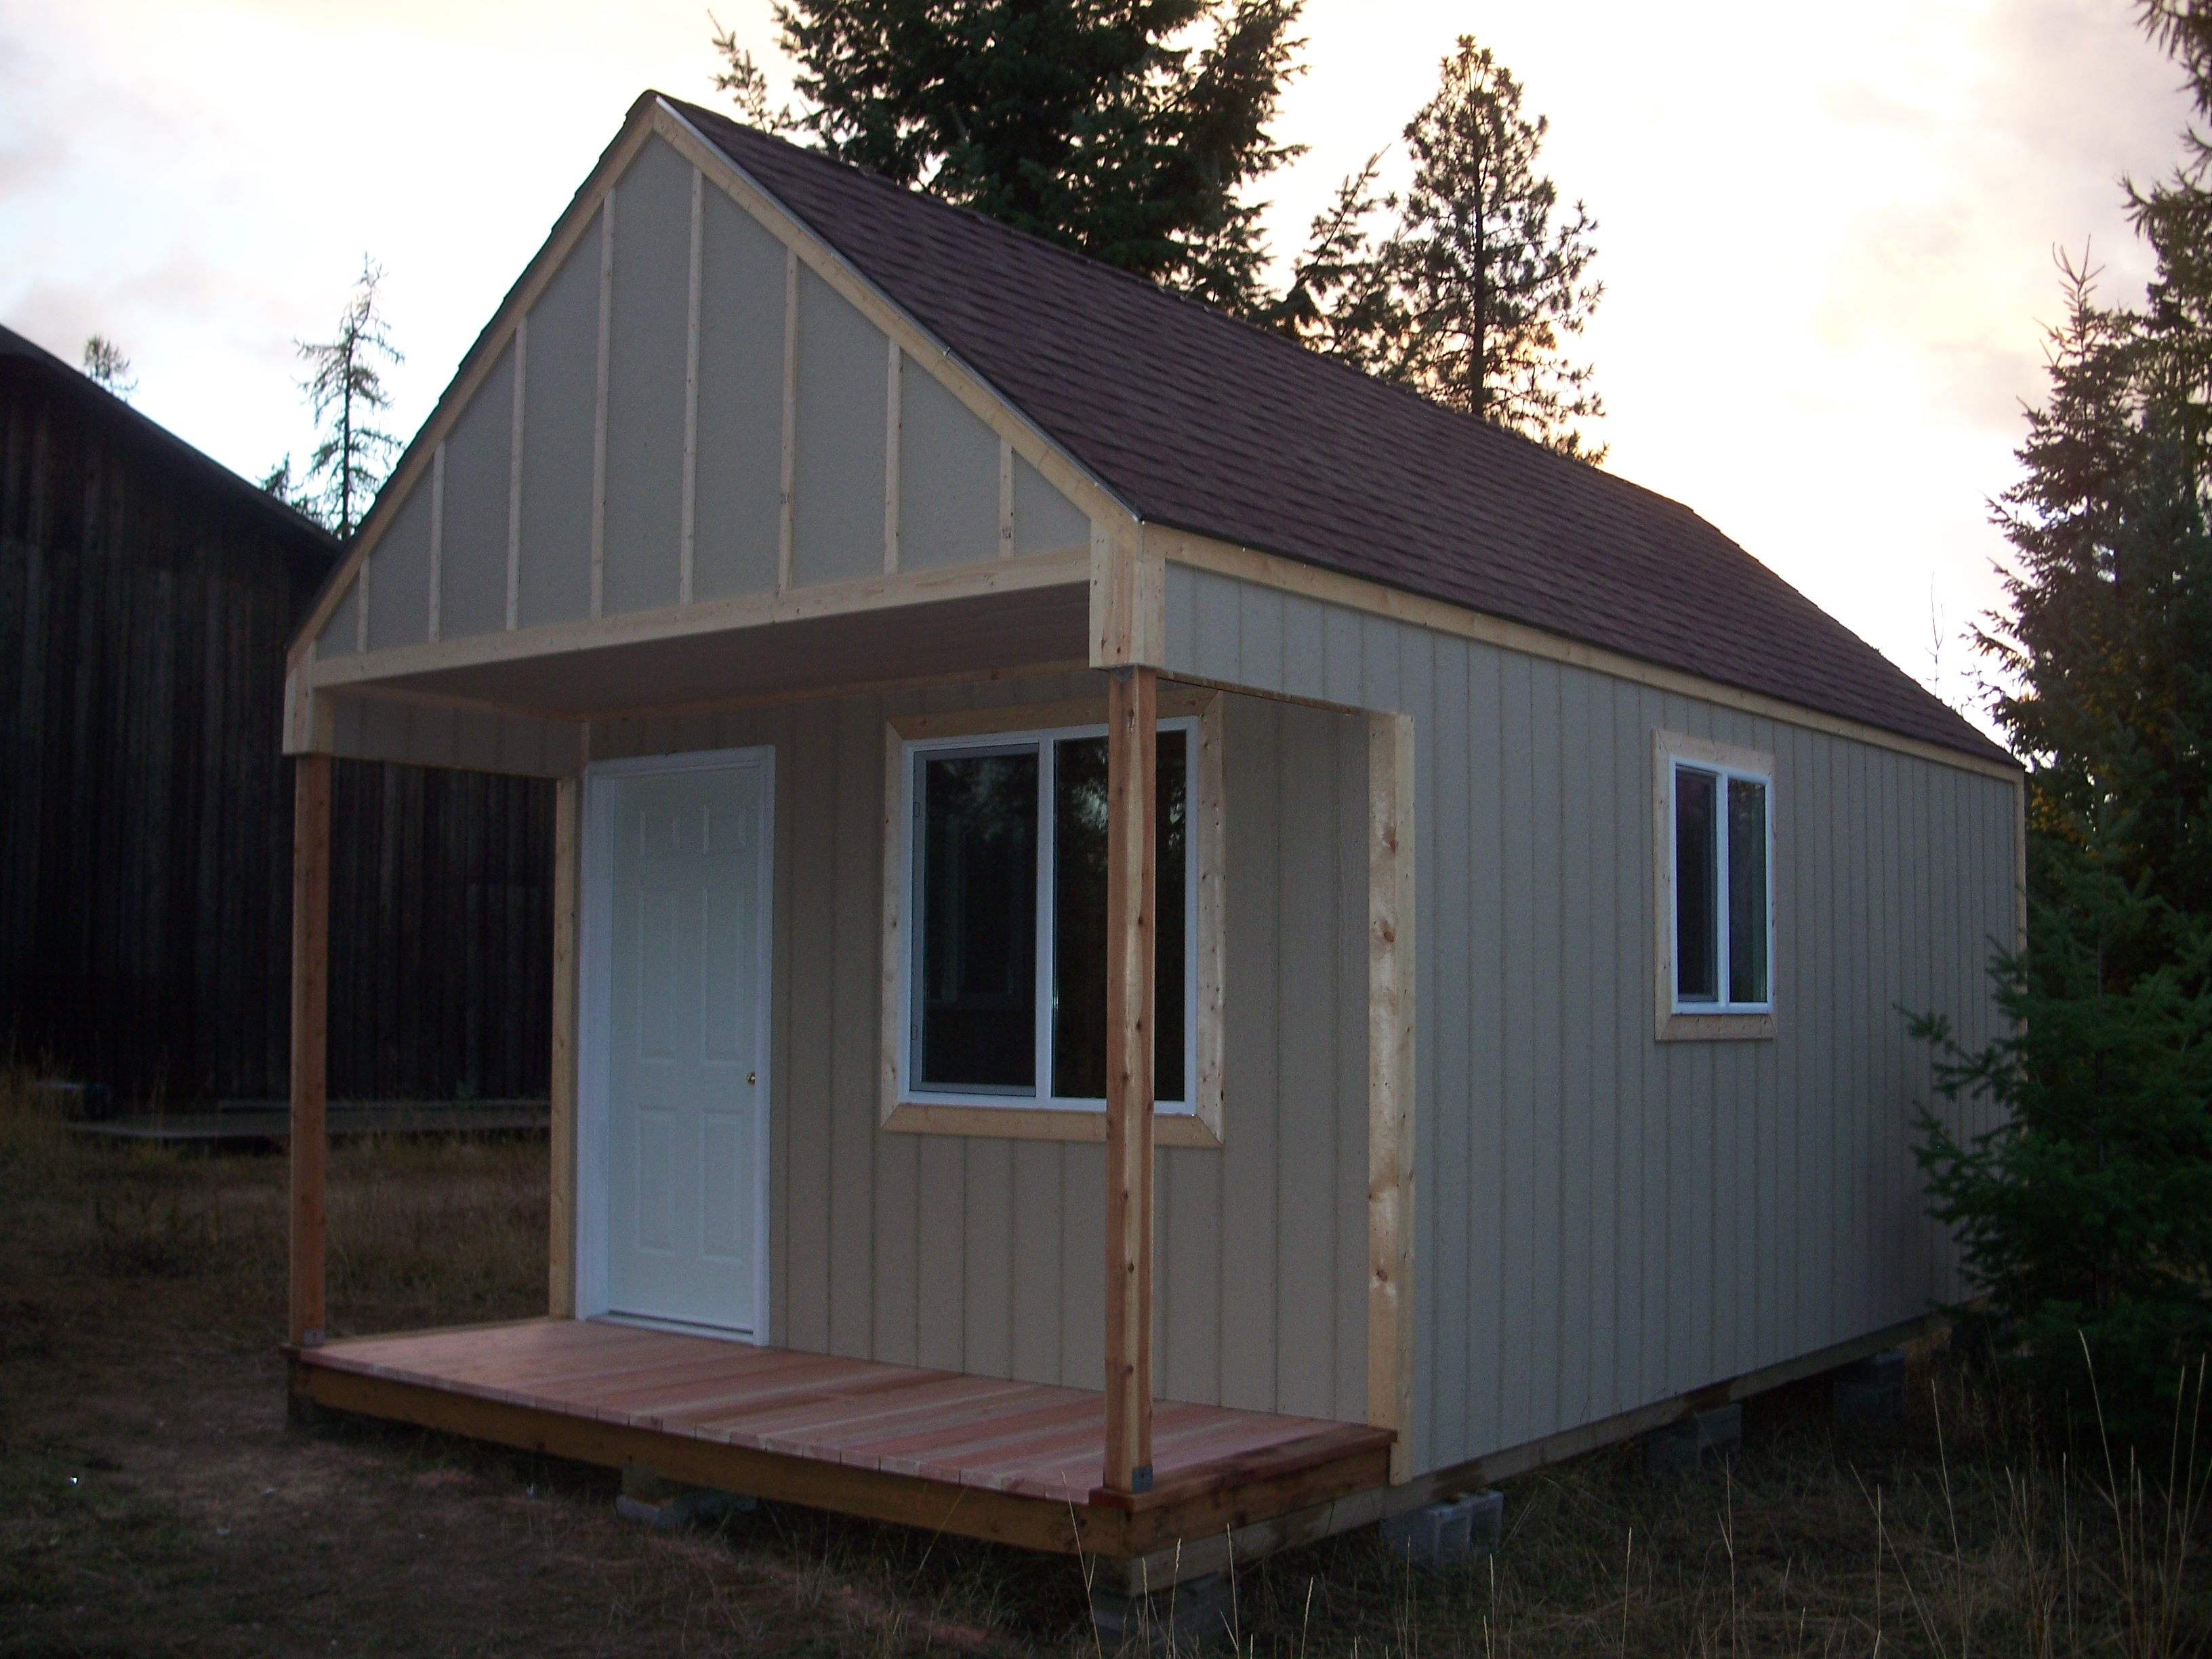 lowe 39 s cabin kits diy small cabin kits diy cabins kits